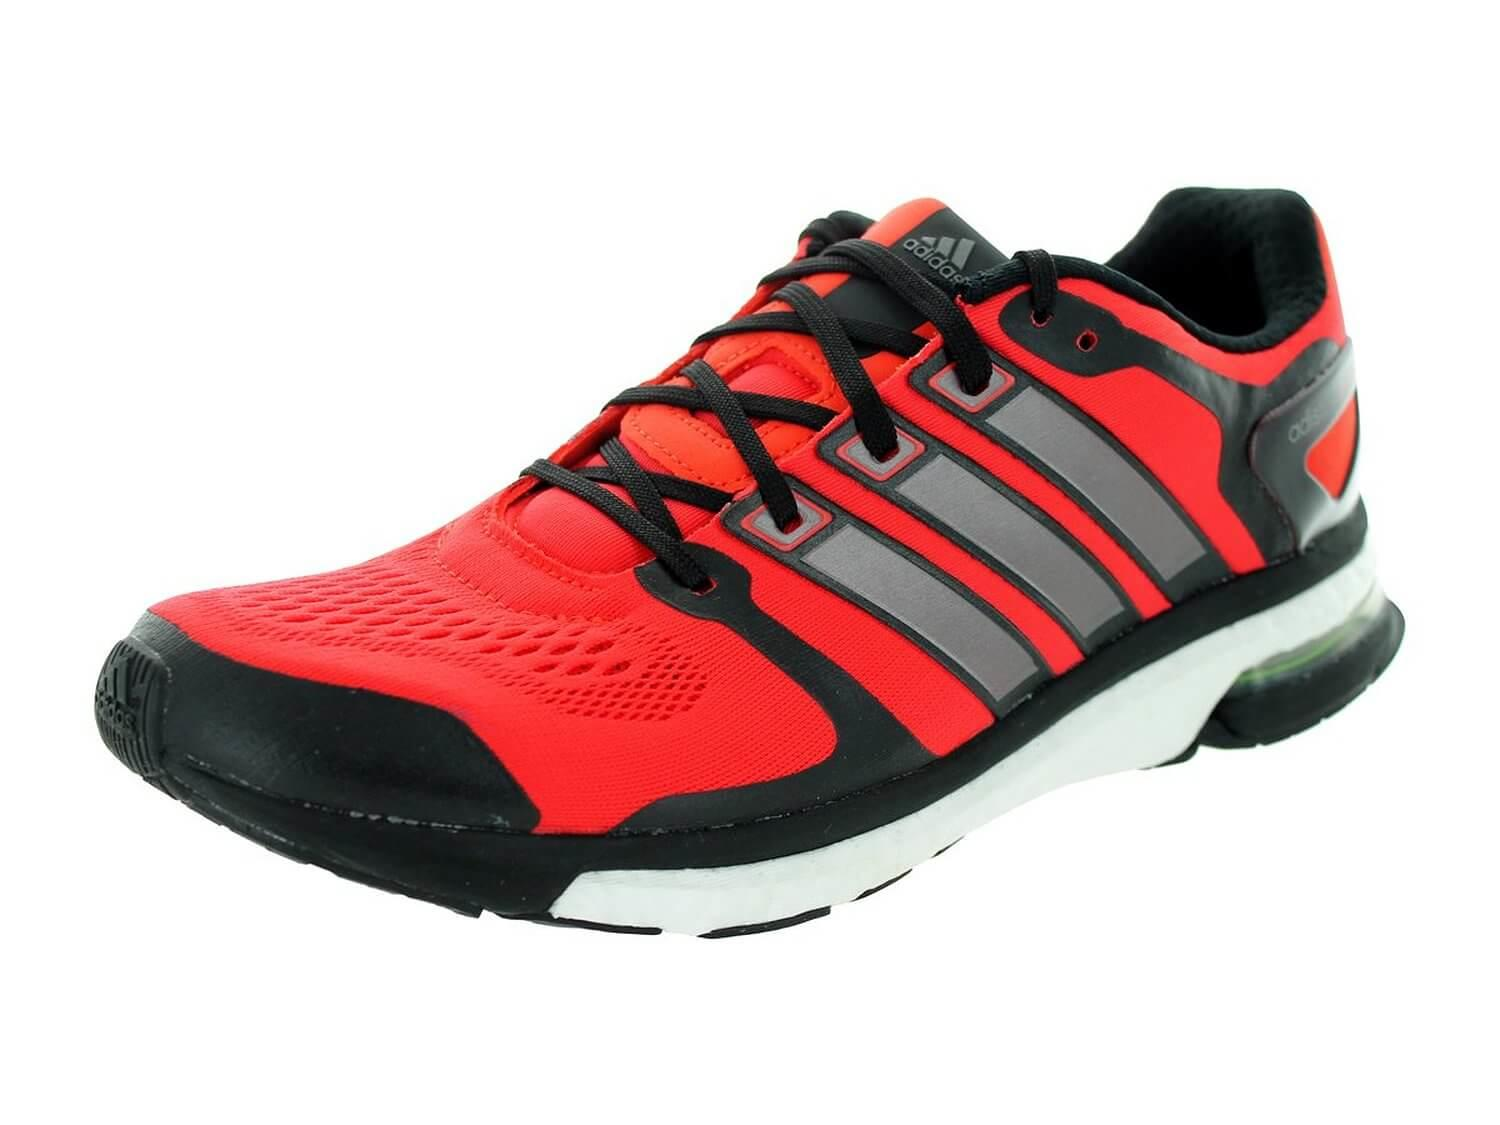 Adidas Safety Shoes For Men